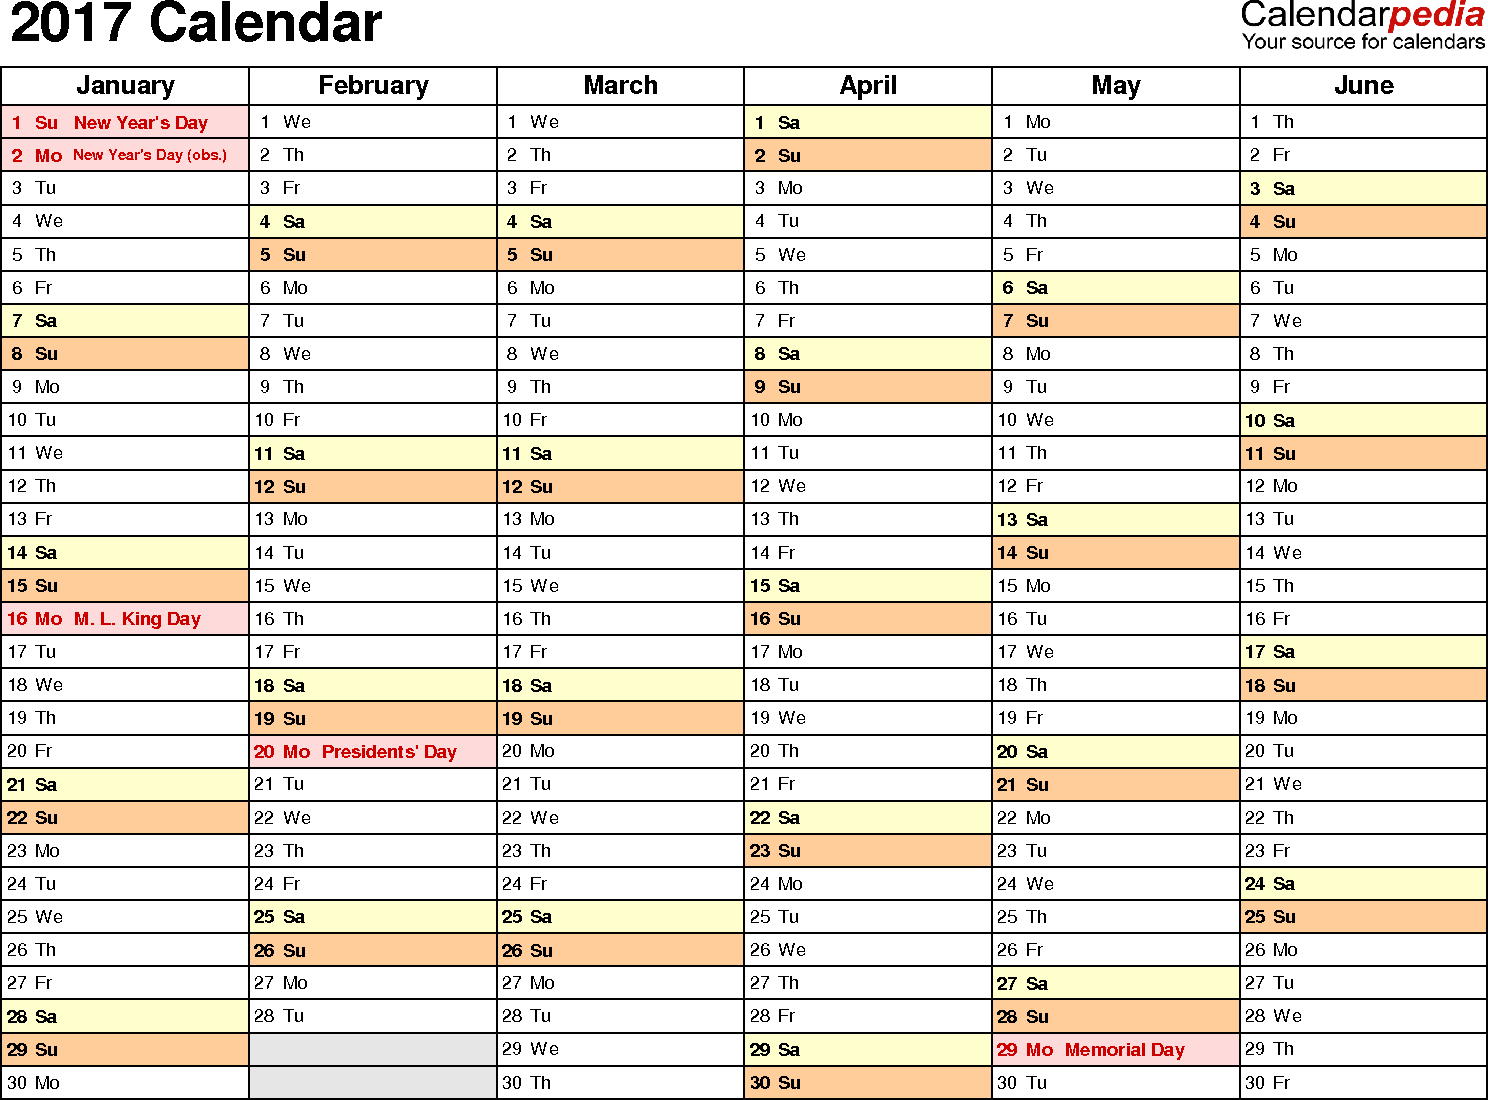 Ediblewildsus  Sweet  Calendar  Download  Free Printable Excel Templates Xls With Inspiring Template   Calendar For Excel Months Horizontally  Pages Landscape Orientation With Beauteous How To Use Vlookup In Excel  Also Excel Sort In Addition How To Create Defined Names In Excel And Excel Define As Well As How To Count Rows In Excel Additionally Excel Spreadsheets From Calendarpediacom With Ediblewildsus  Inspiring  Calendar  Download  Free Printable Excel Templates Xls With Beauteous Template   Calendar For Excel Months Horizontally  Pages Landscape Orientation And Sweet How To Use Vlookup In Excel  Also Excel Sort In Addition How To Create Defined Names In Excel From Calendarpediacom